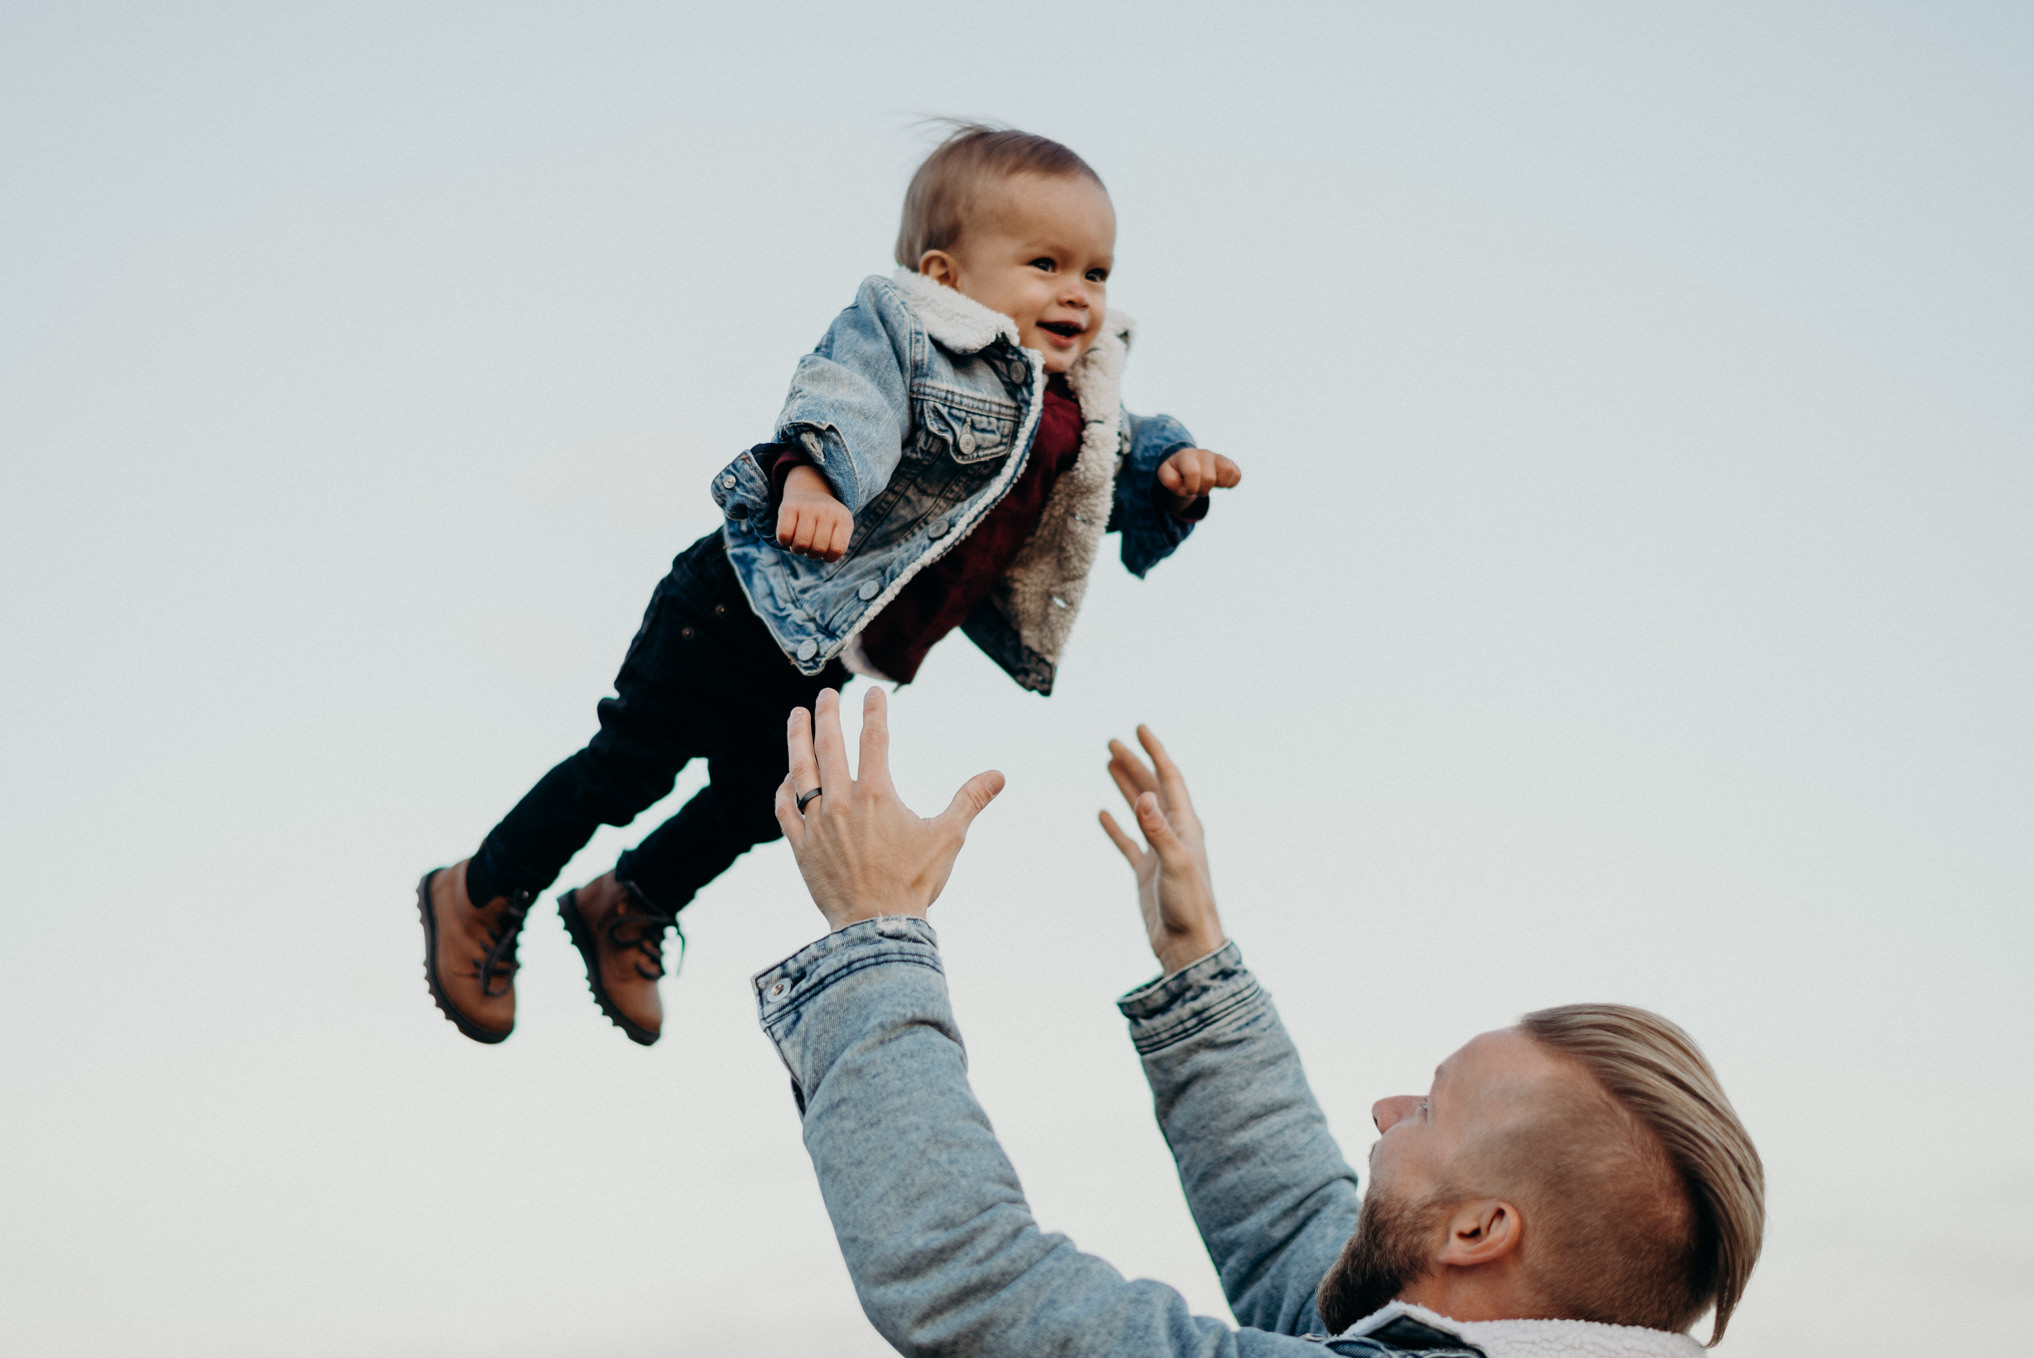 dad throwing baby boy in air with matching jean jacket